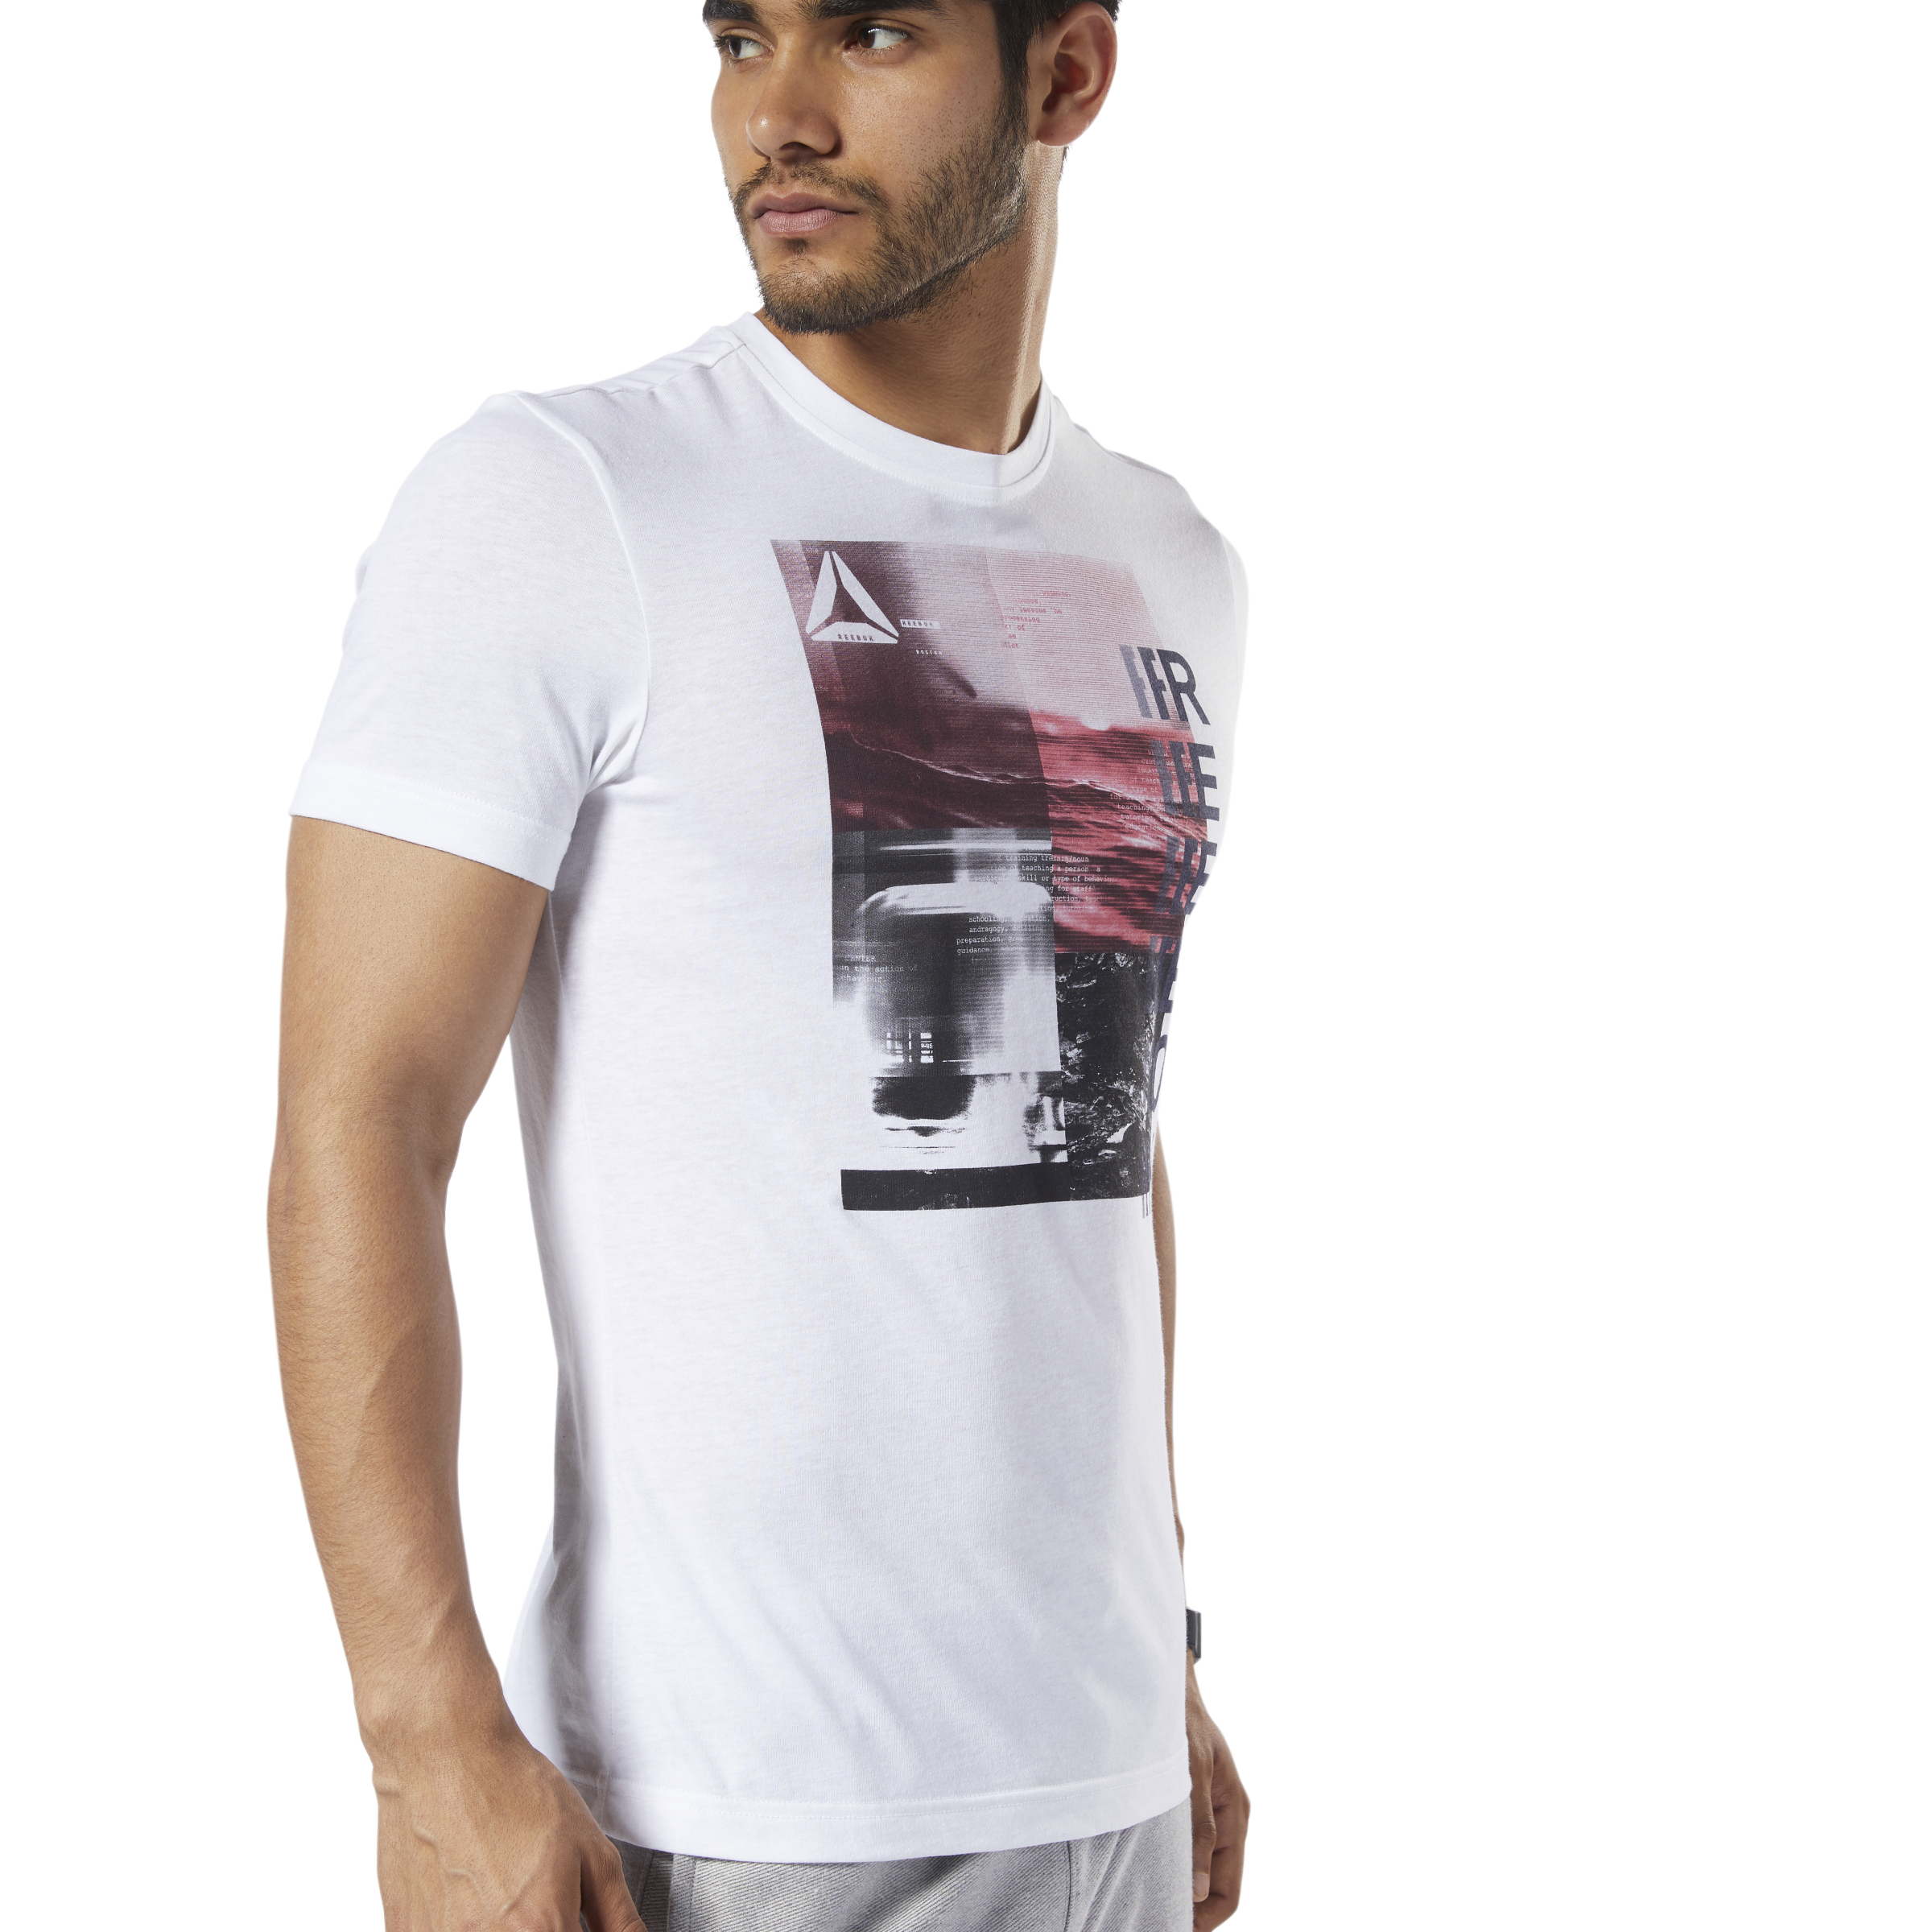 Reebok-Men-039-s-Graphic-Series-One-Series-Training-Photo-Print-Tee thumbnail 10